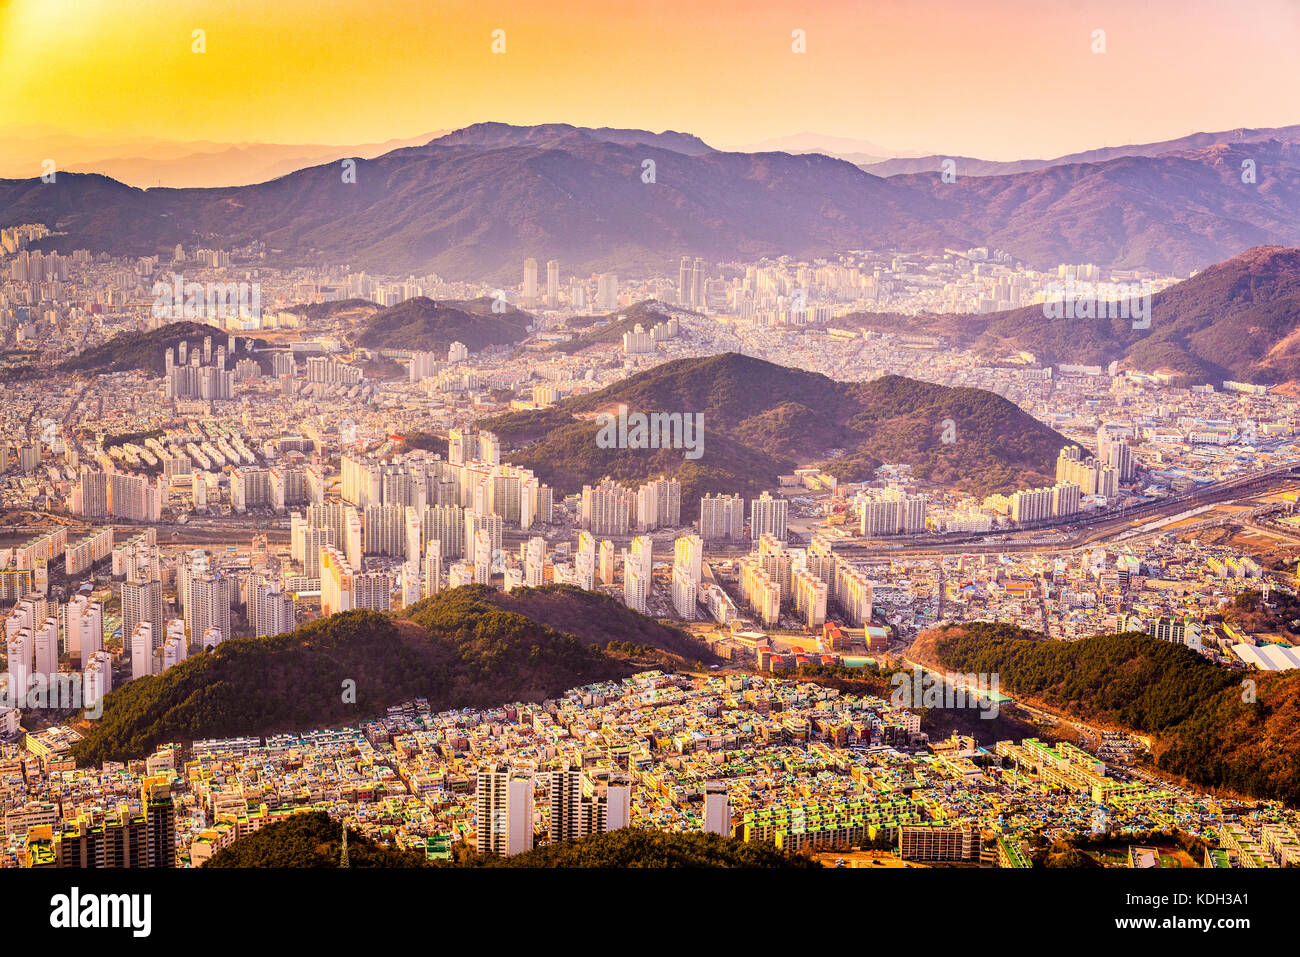 Busan, South Korea cityscape at dusk. - Stock Image